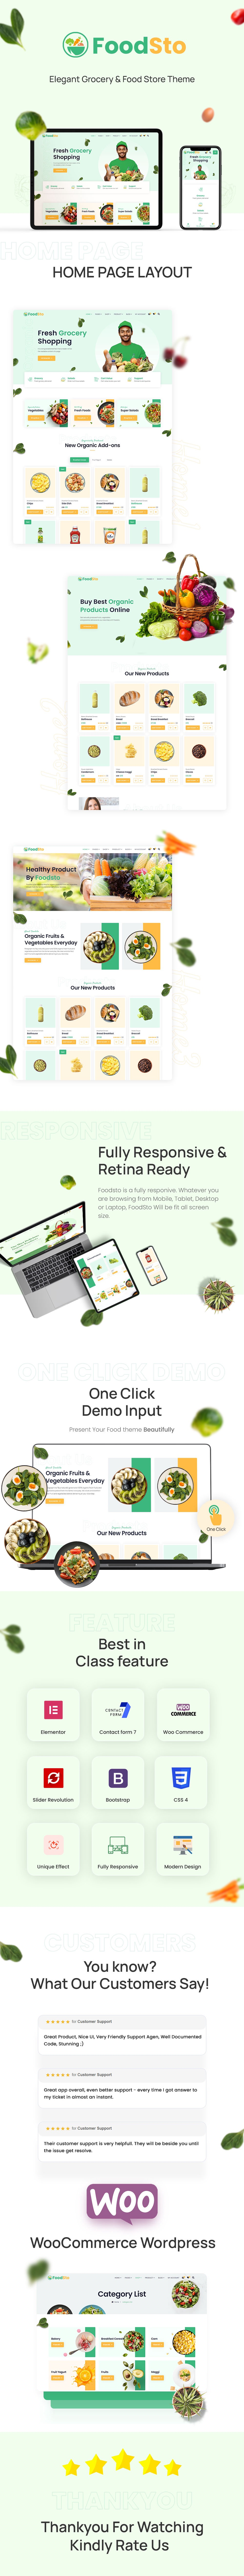 Foodsto : Grocery & Food Store WordPress Theme  Elementor Page Builder: Lots Of Aces Up Its Sleeve! 1 lRRCsvX2QprjktKhCl HiA